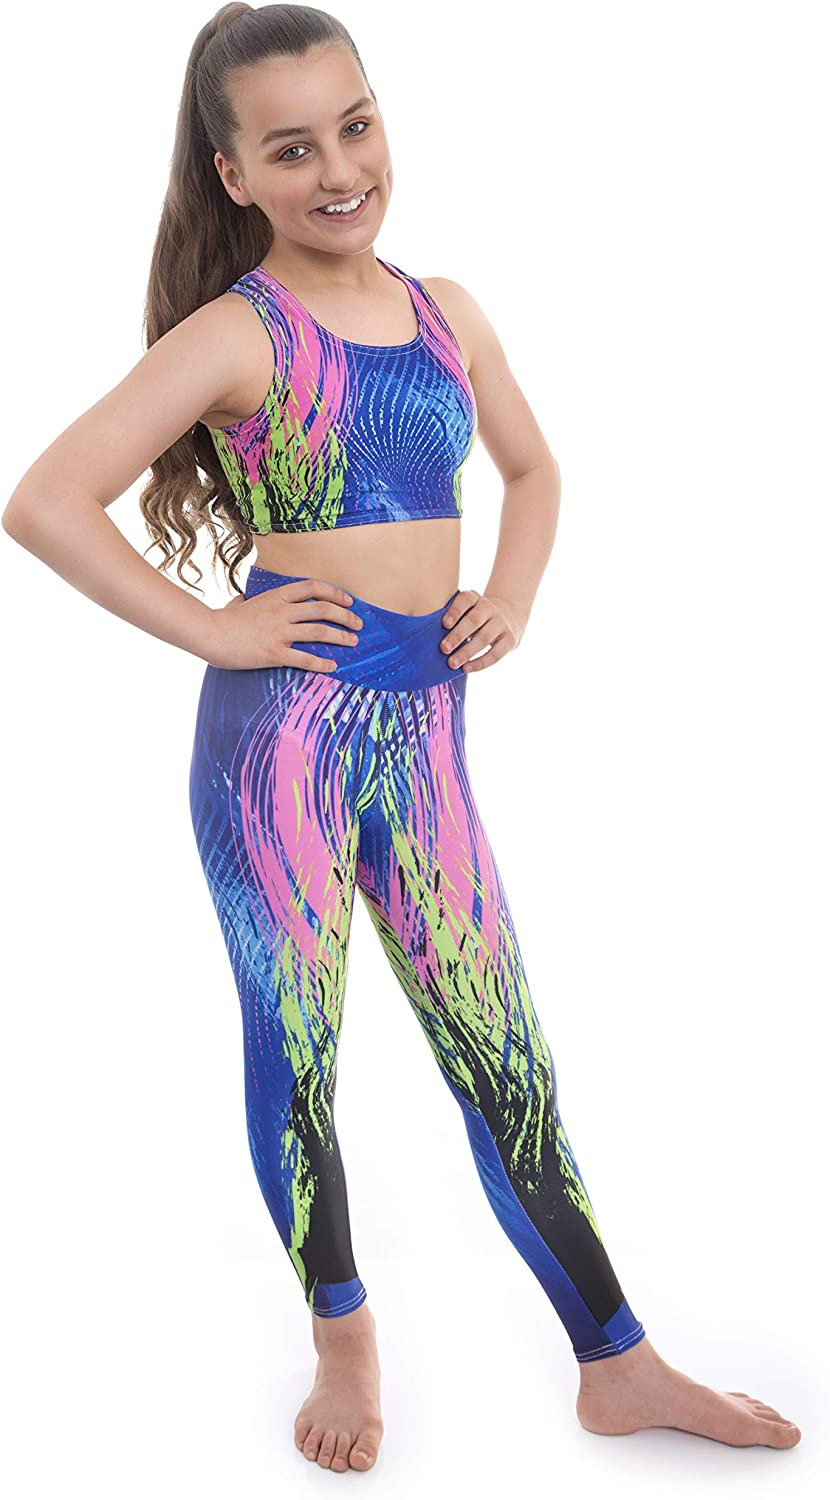 Kinetic By Velocity Pro Sport Crop Top And Leggings Set For Girls Ideal For Gym Workout Running Summer Casual Gymnastics Sportswear Yoga Clothes Amazon Co Uk Clothing